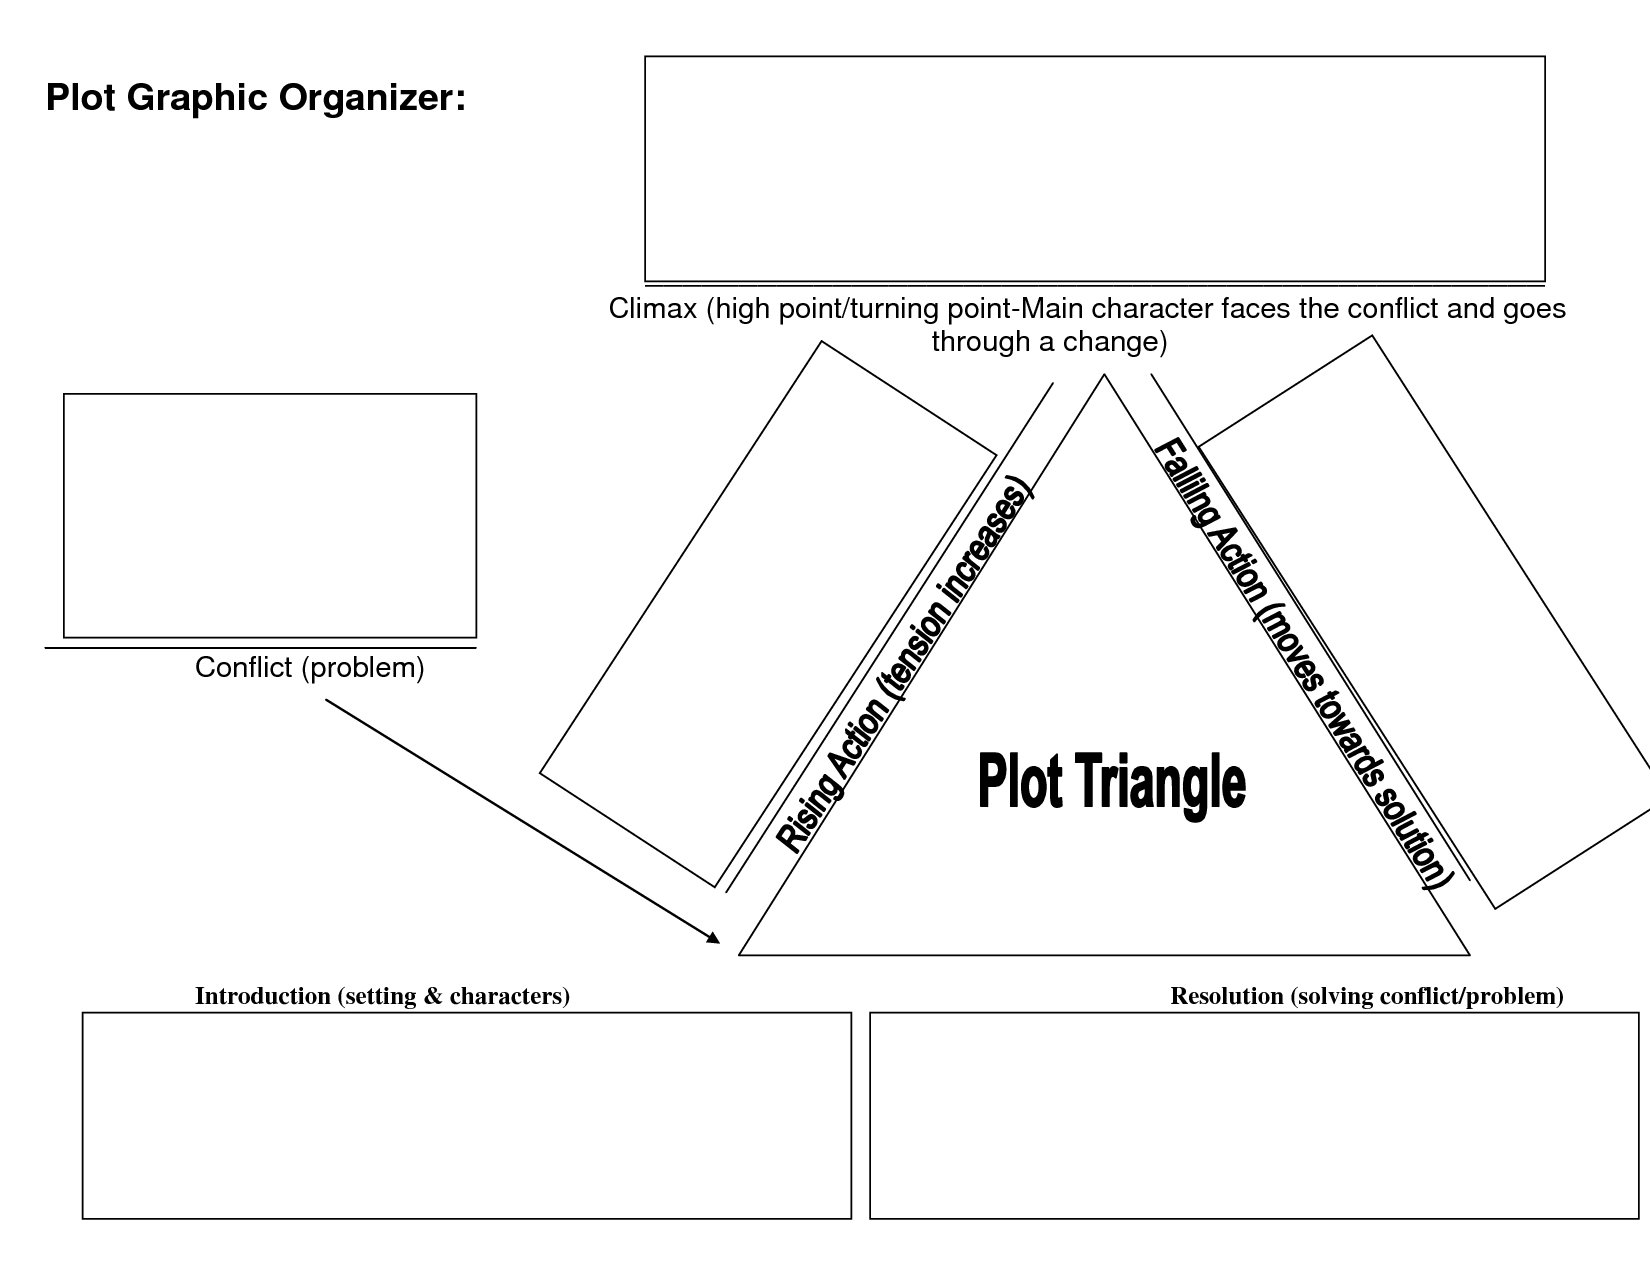 Elements Of A Plot Graphic Organizer